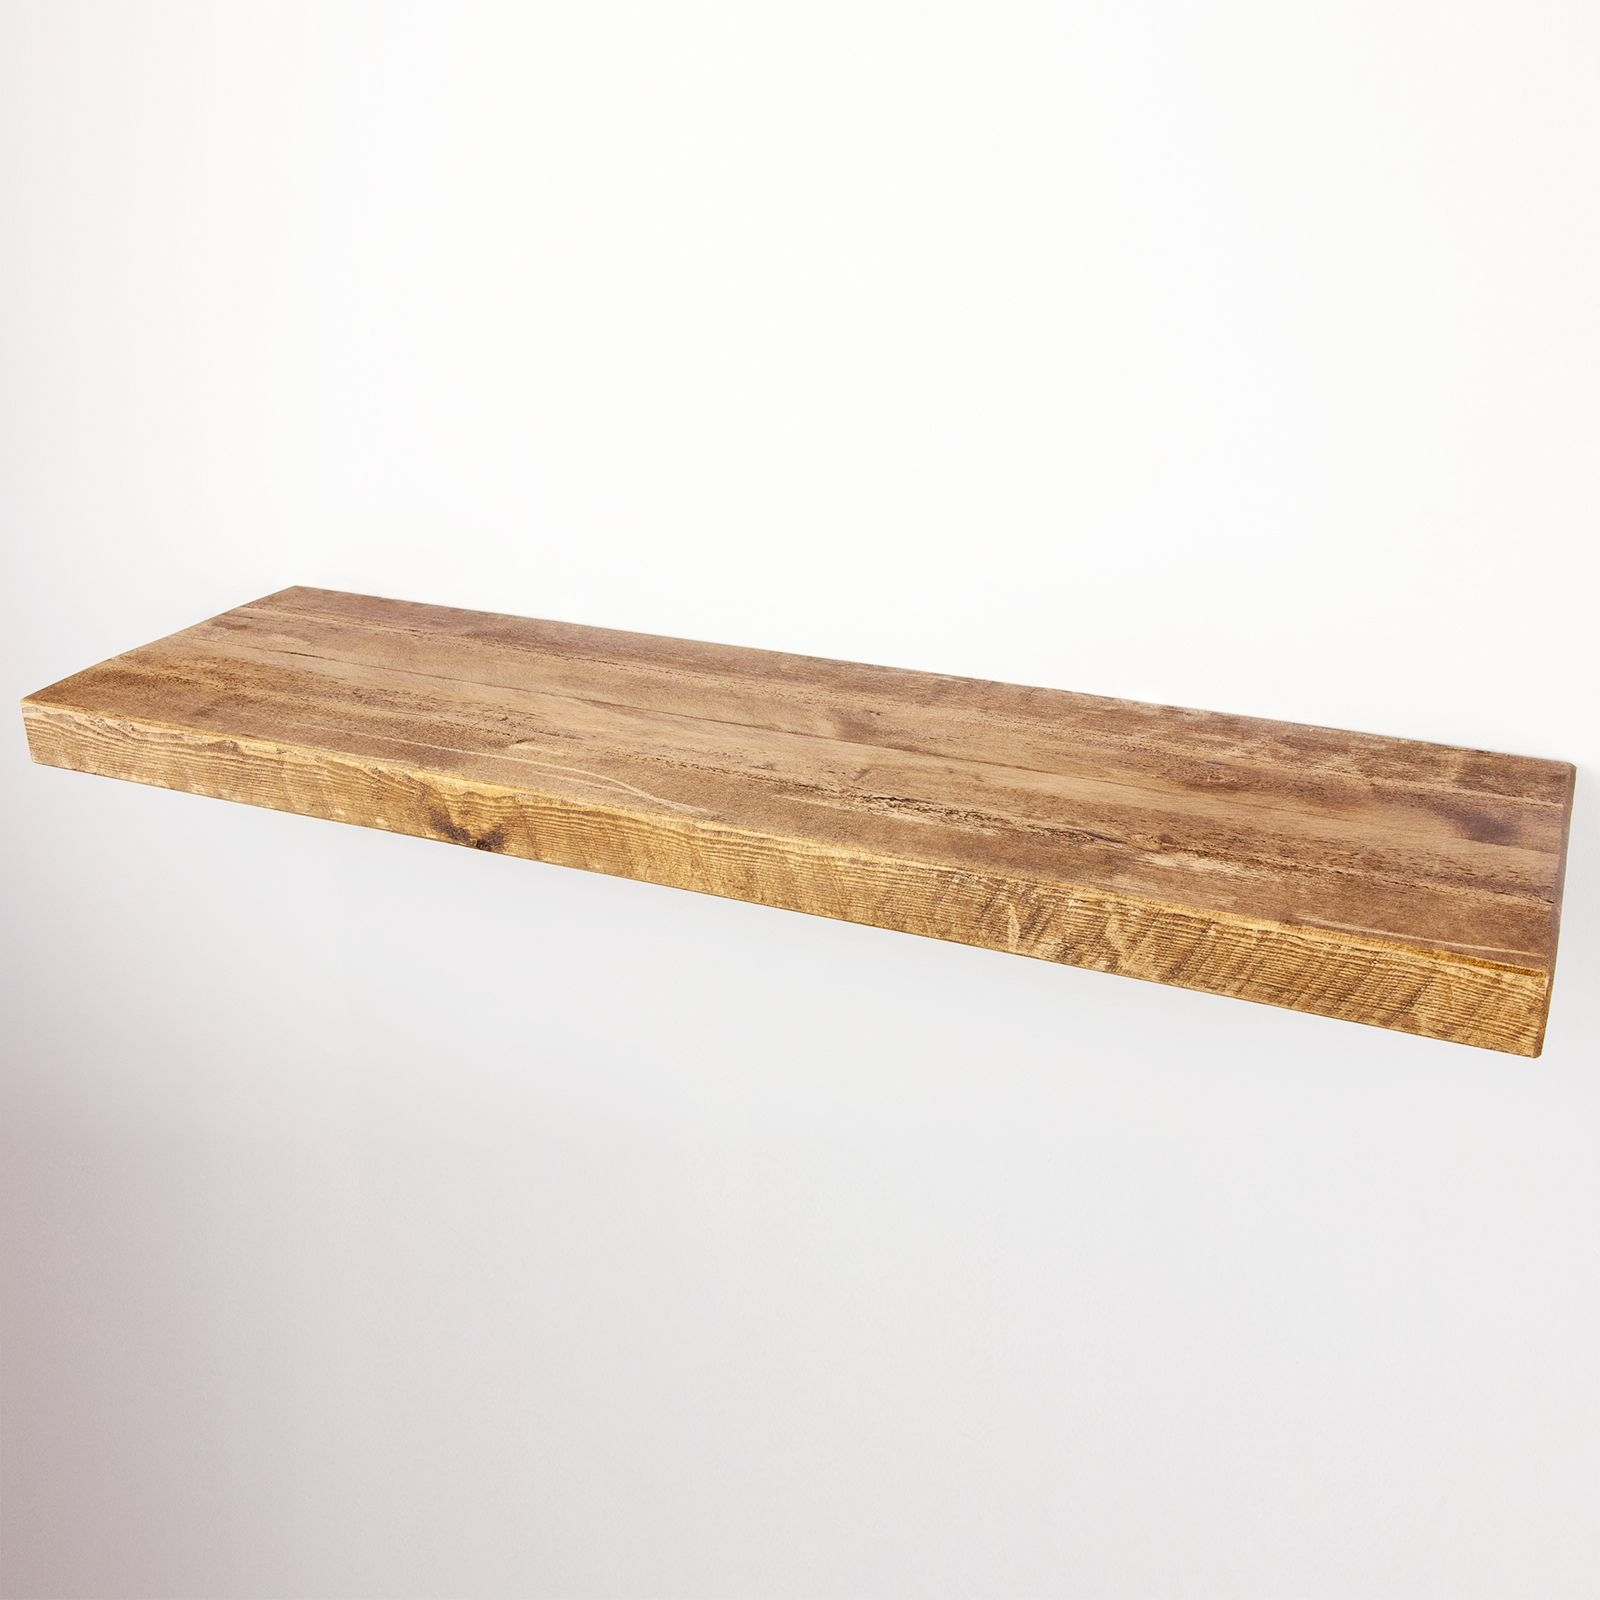 Floating Shelf 12×2 Solid Pine Funky Chunky Furniture Inside 50cm Floating Shelf (View 10 of 15)